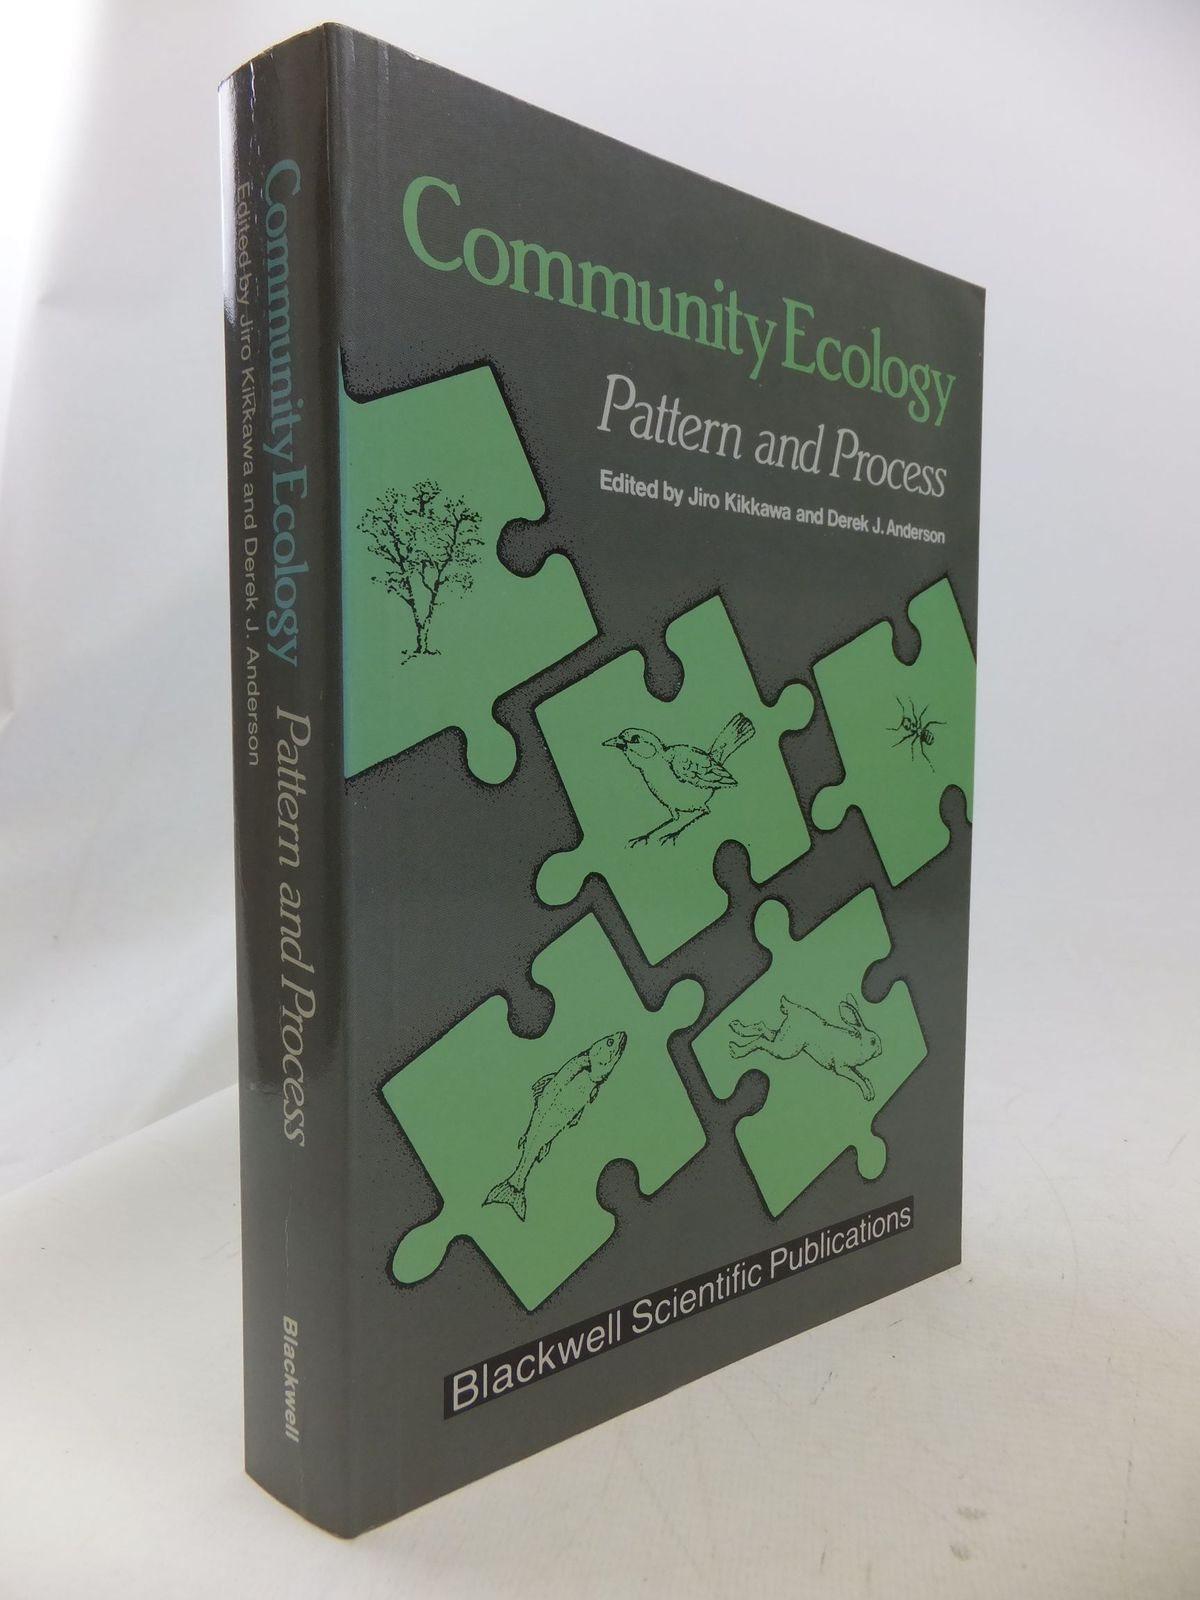 Photo of COMMUNITY ECOLOGY PATTERN AND PROCESS written by Kikkawa, Jiro Anderson, Derek J. published by Blackwell Scientific Publications (STOCK CODE: 1710836)  for sale by Stella & Rose's Books